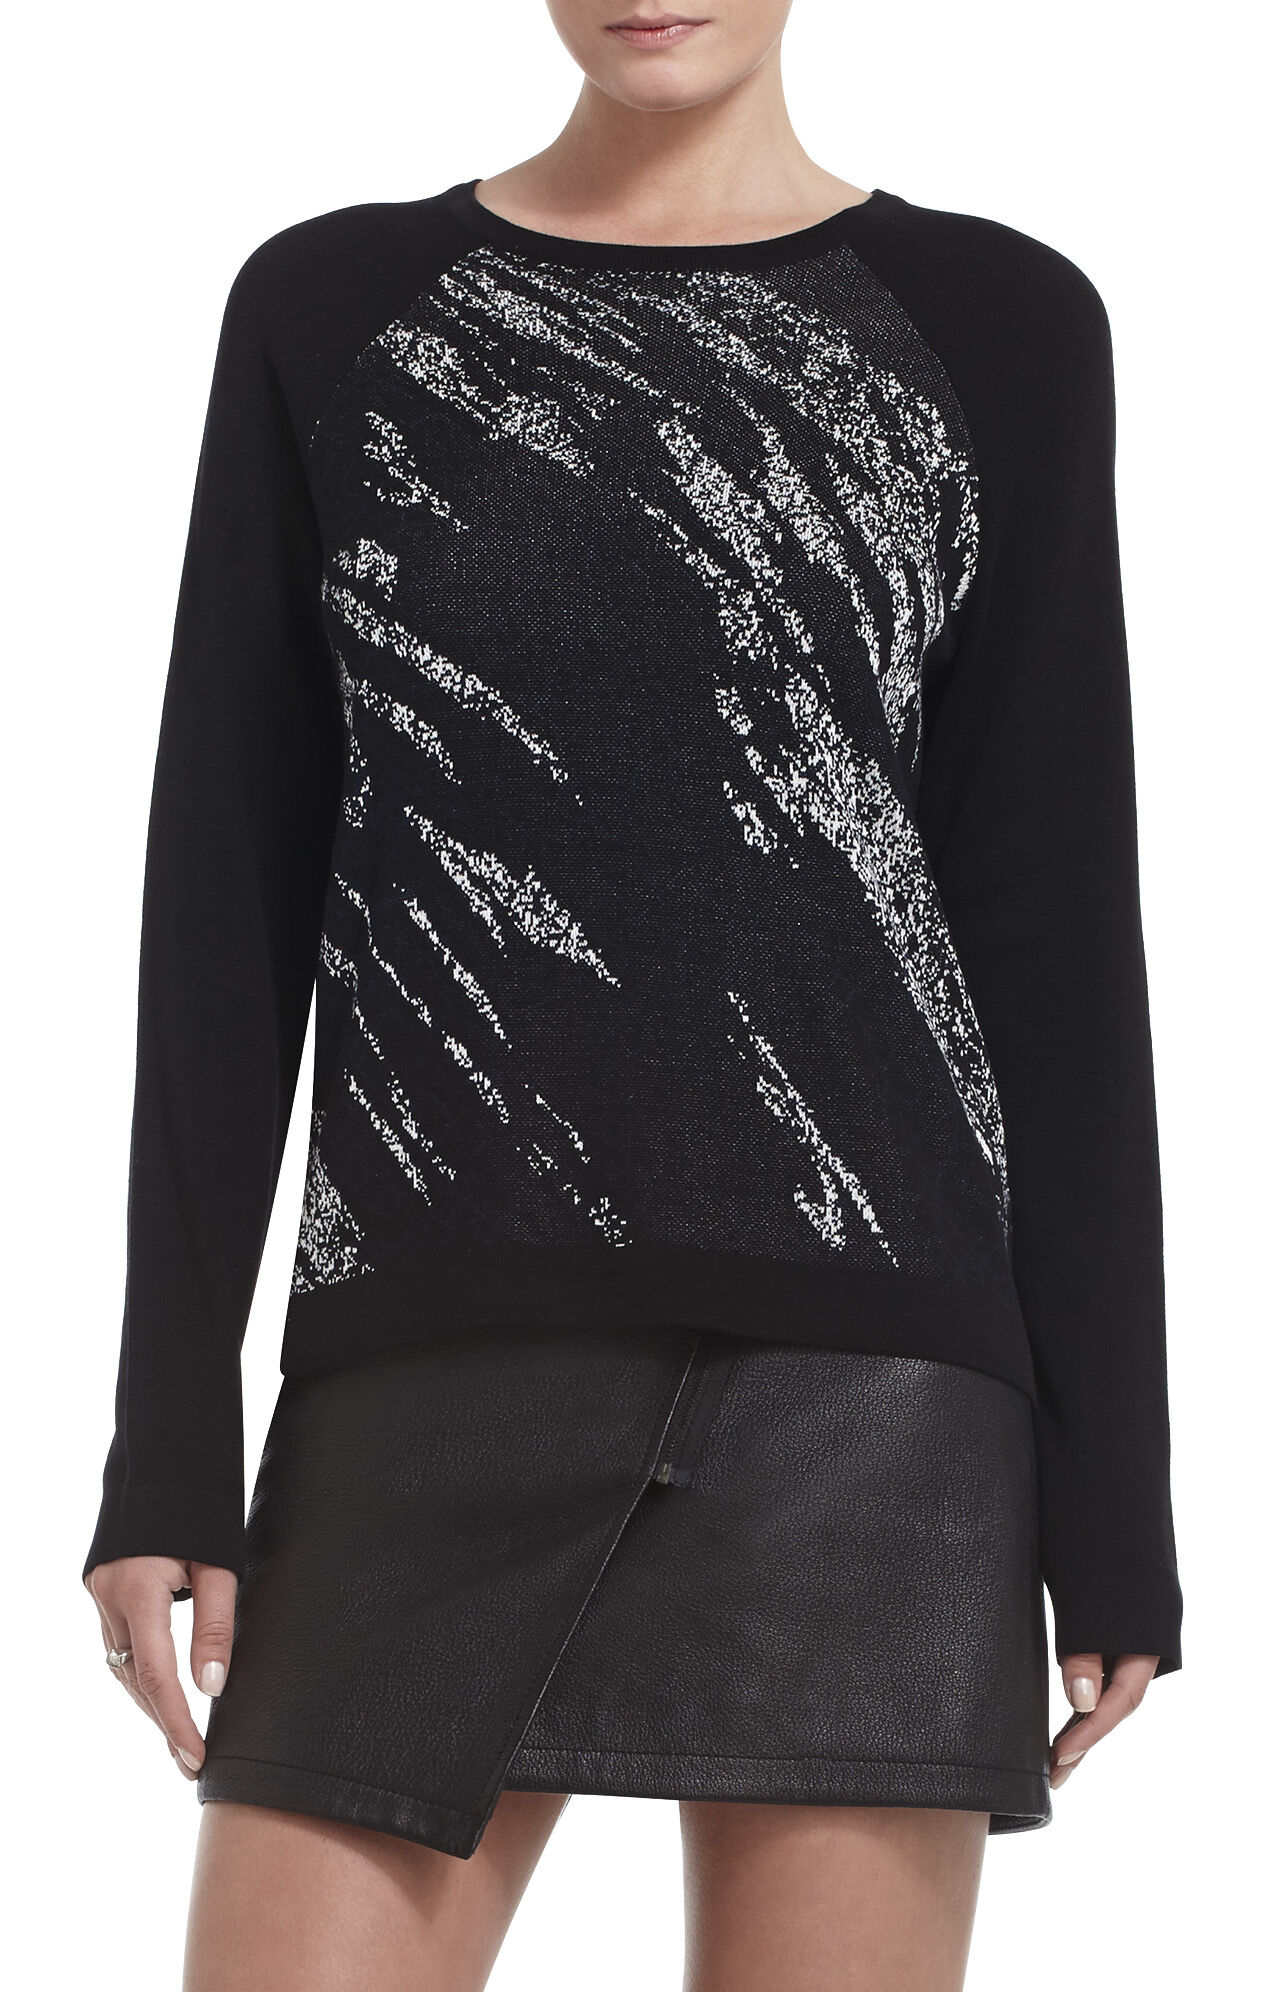 Lex Crackled Jacquard Pullover